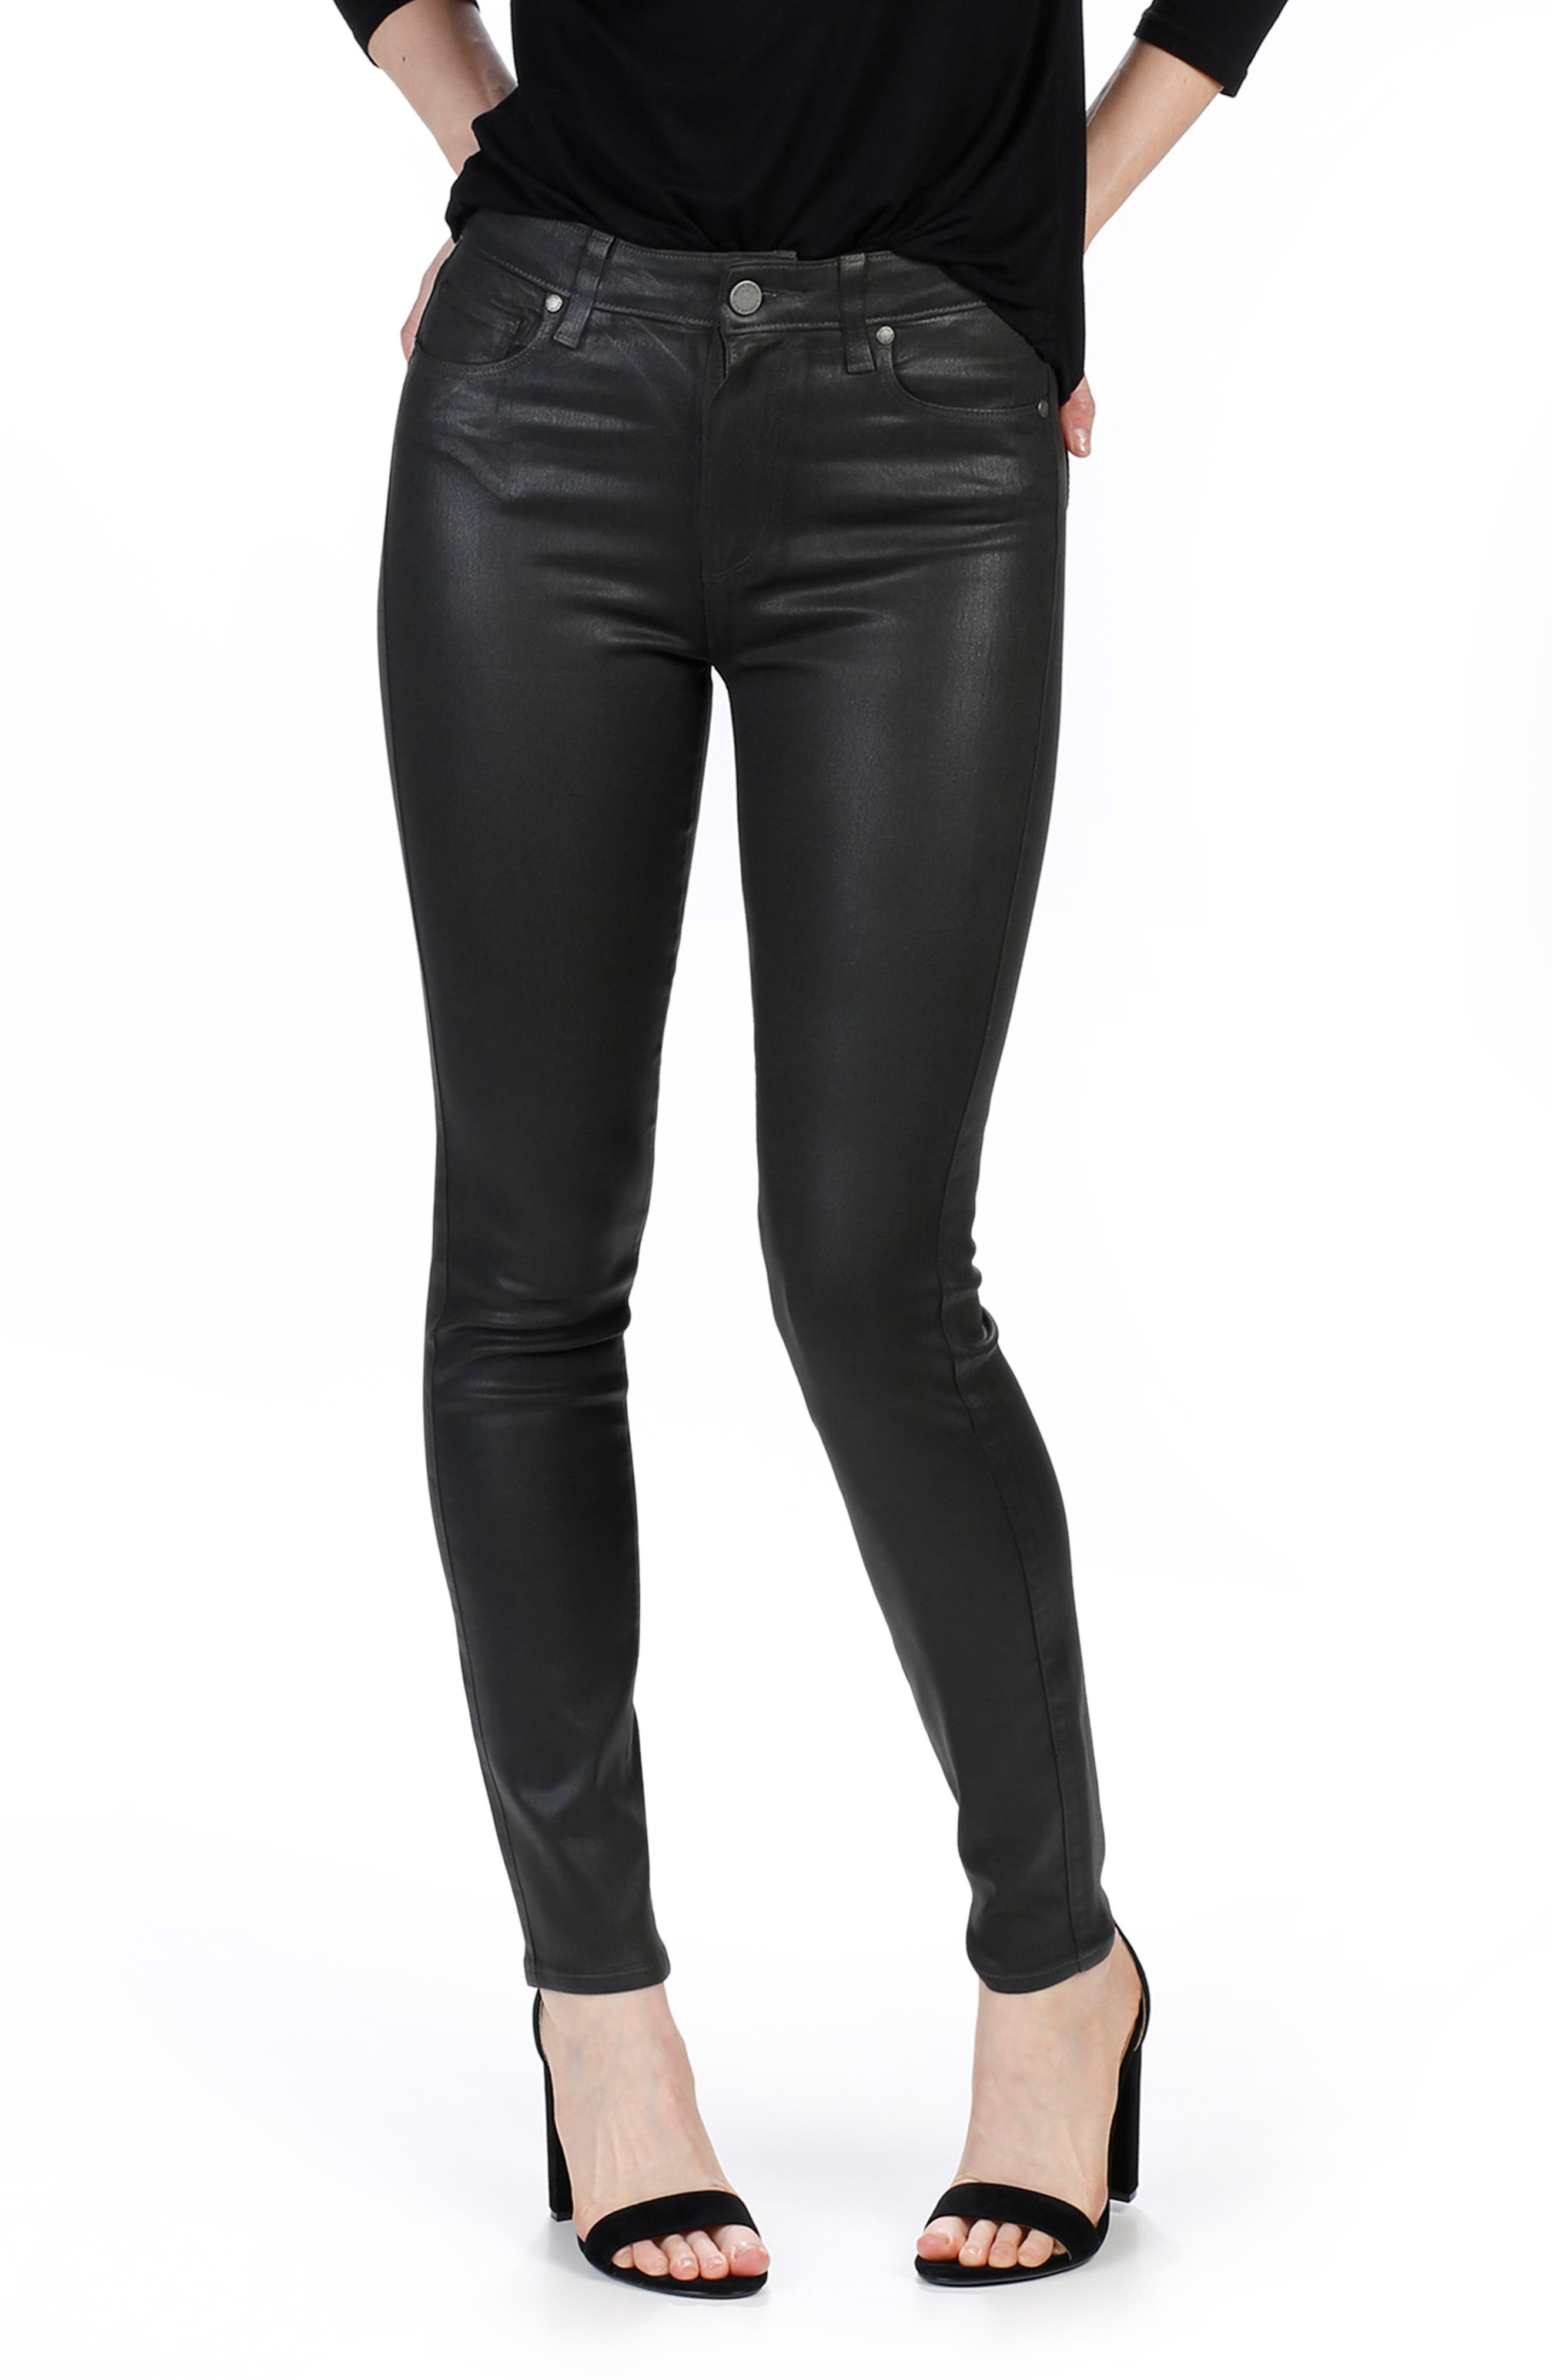 Transcend - Hoxton Coated High Waist Ankle Skinny Jeans,                             Main thumbnail 1, color,                             Deep Juniper Luxe Coating